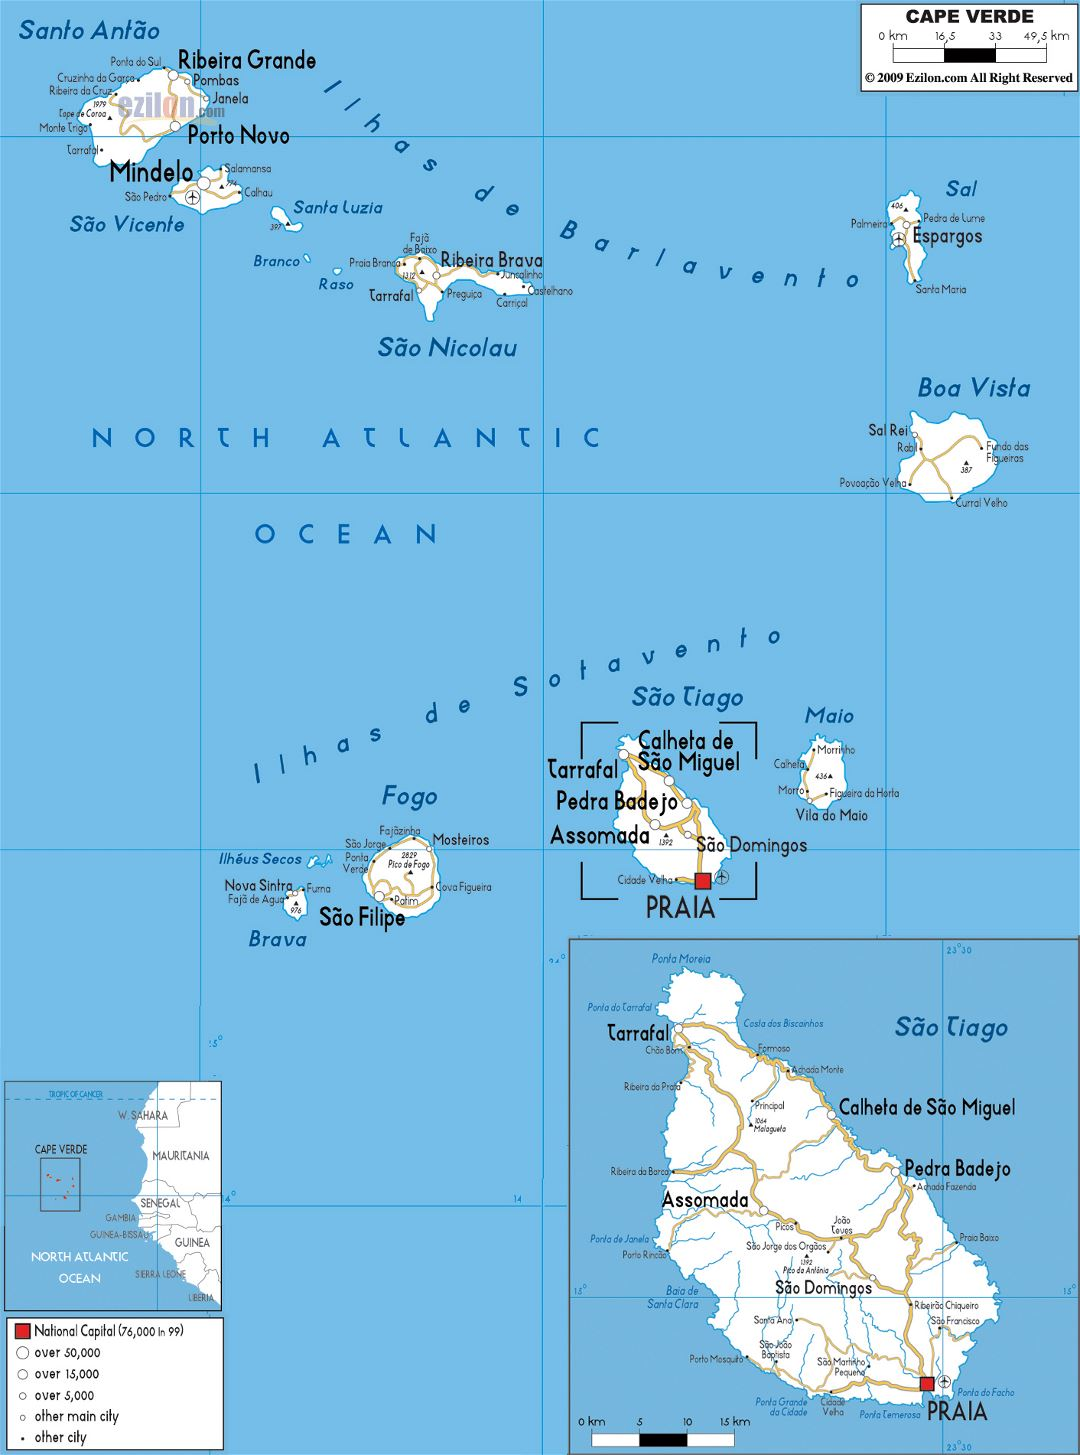 Large road map of Cape Verde with cities and airports